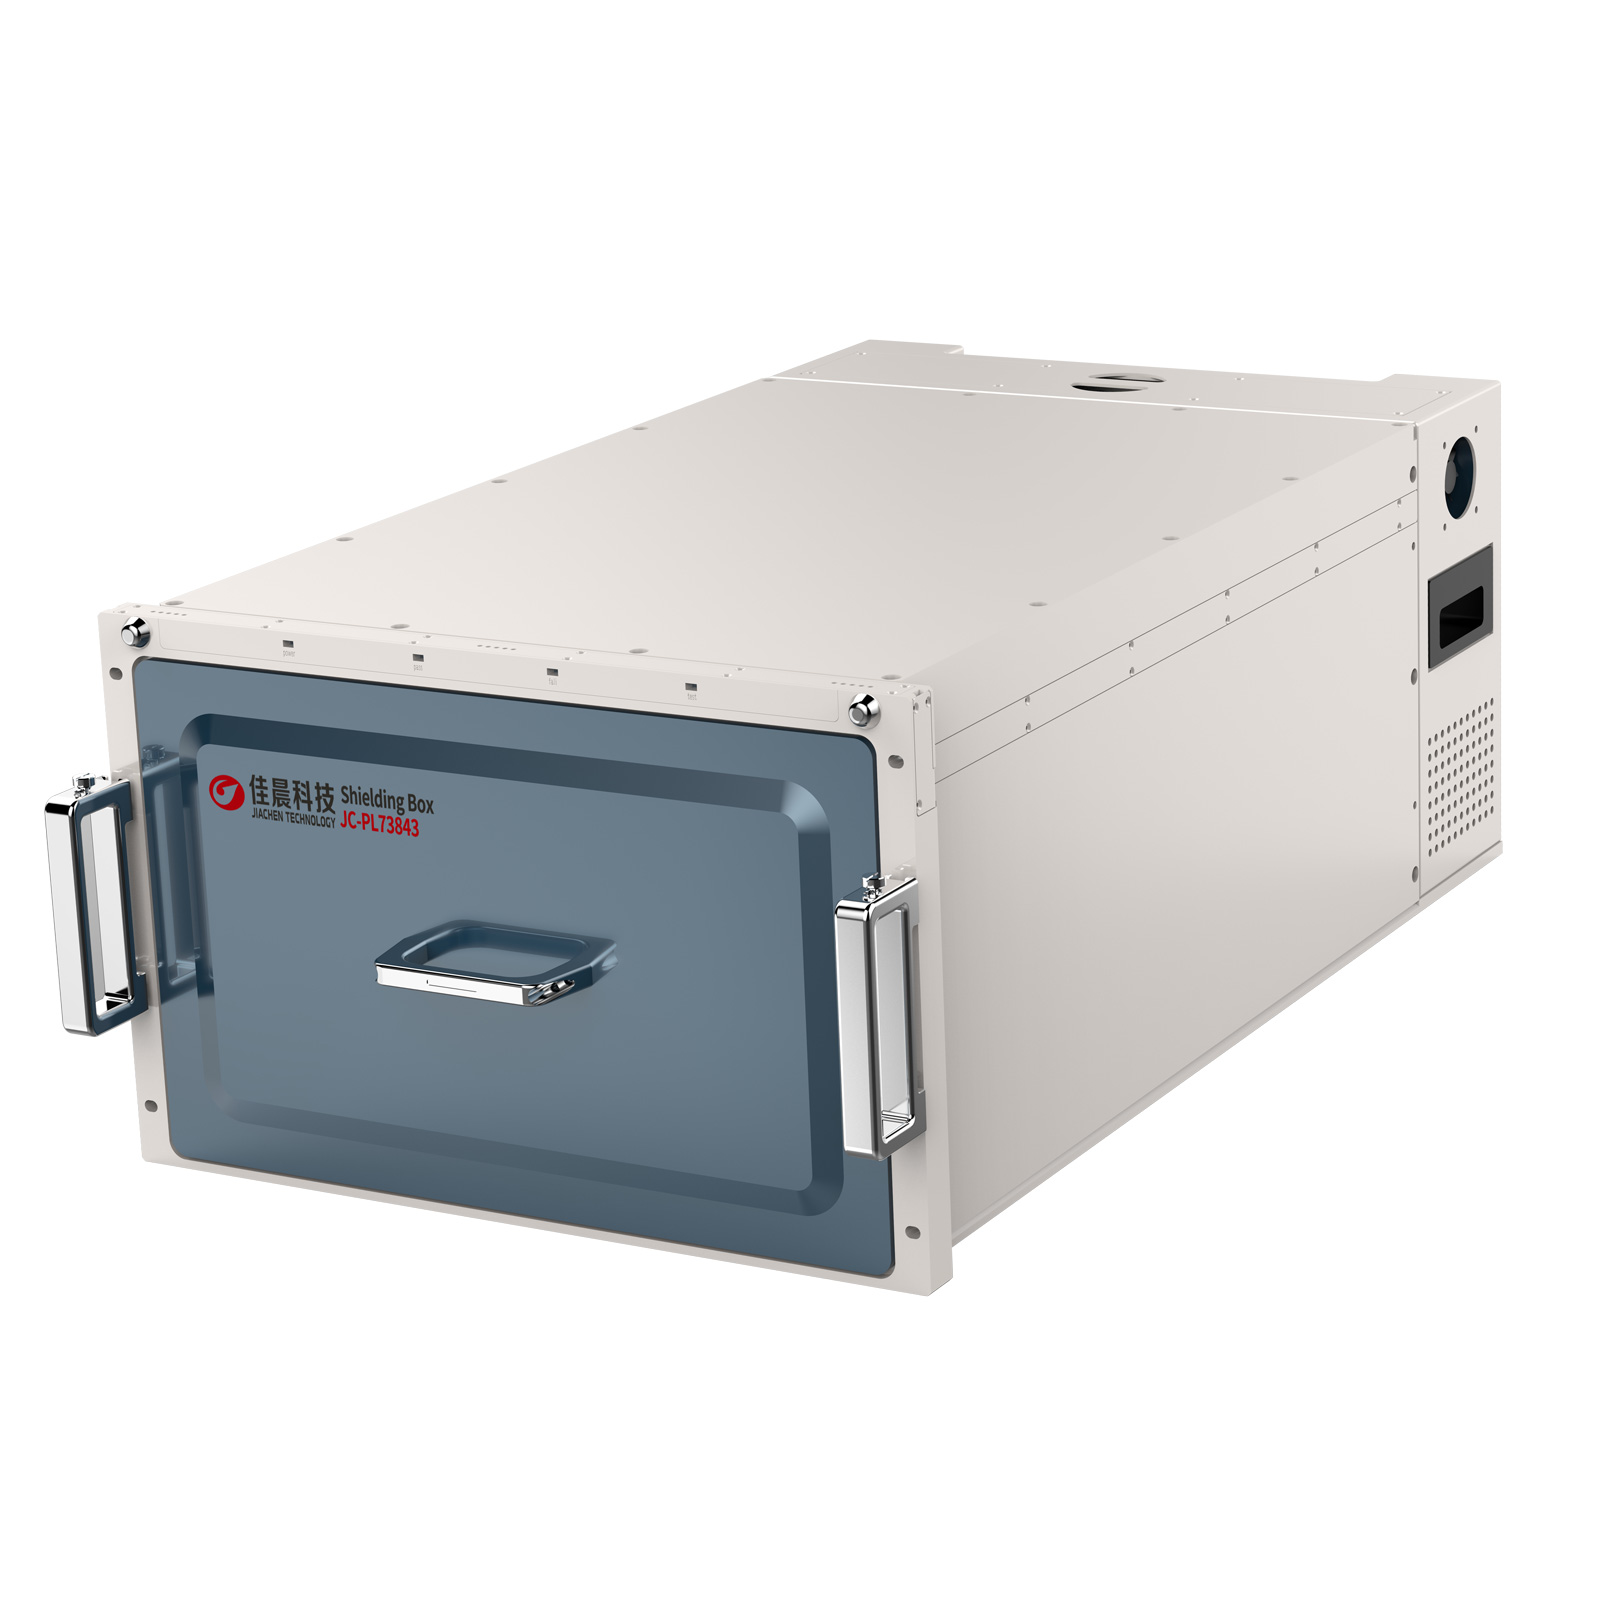 CQL3412 manual drawer type automatic shielding box